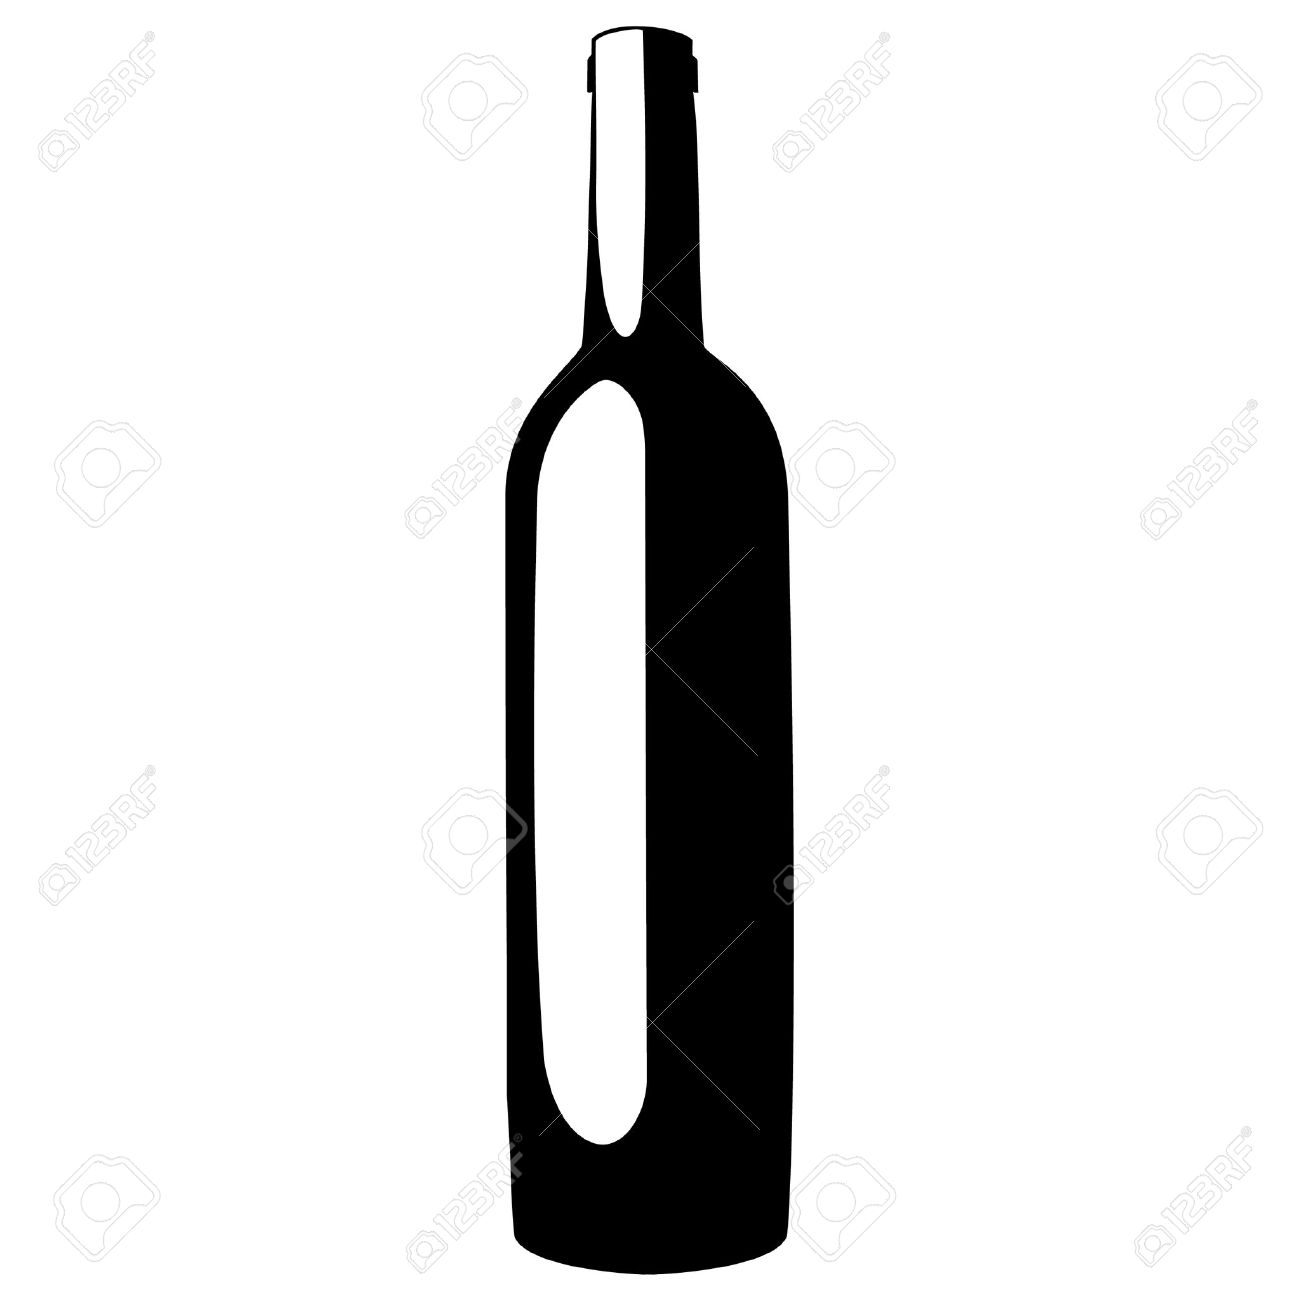 black silhouette of wine bottle vector illustration wine label rh 123rf com wine bottle vector icon wine bottle vector image